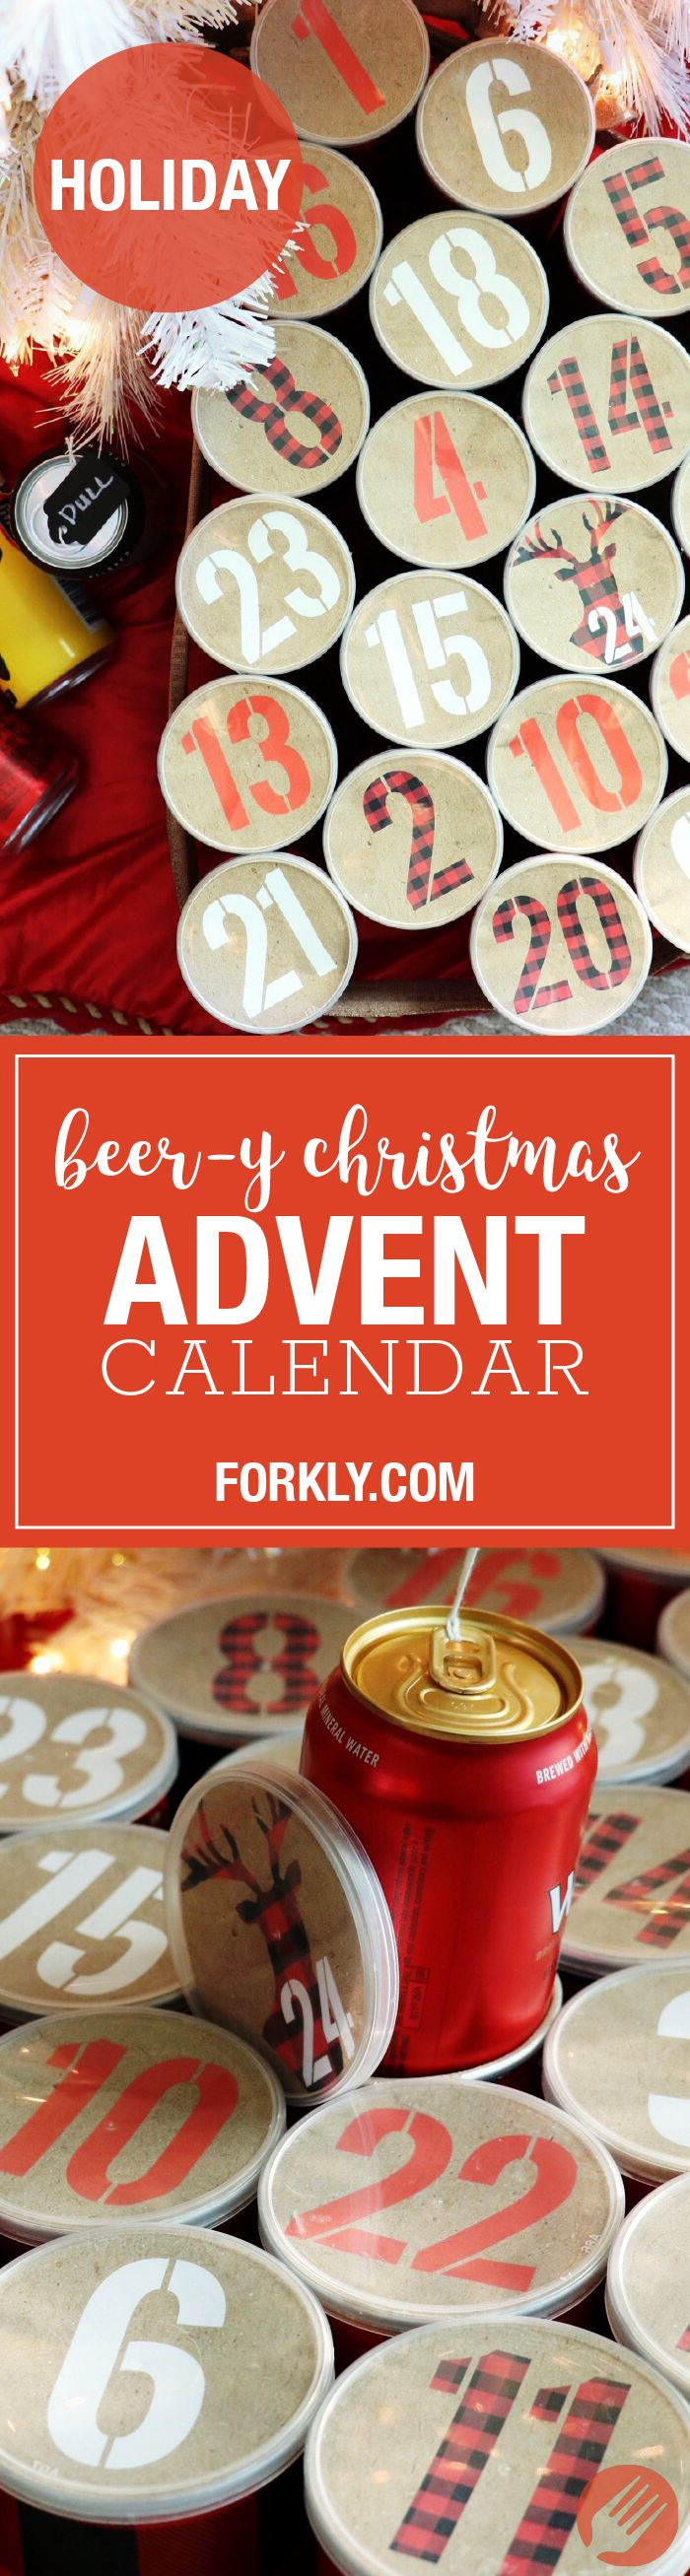 Beer-y Christmas Advent Calendar - http://m.forkly.com/recipes/beer-y-christmas-advent-calendar/